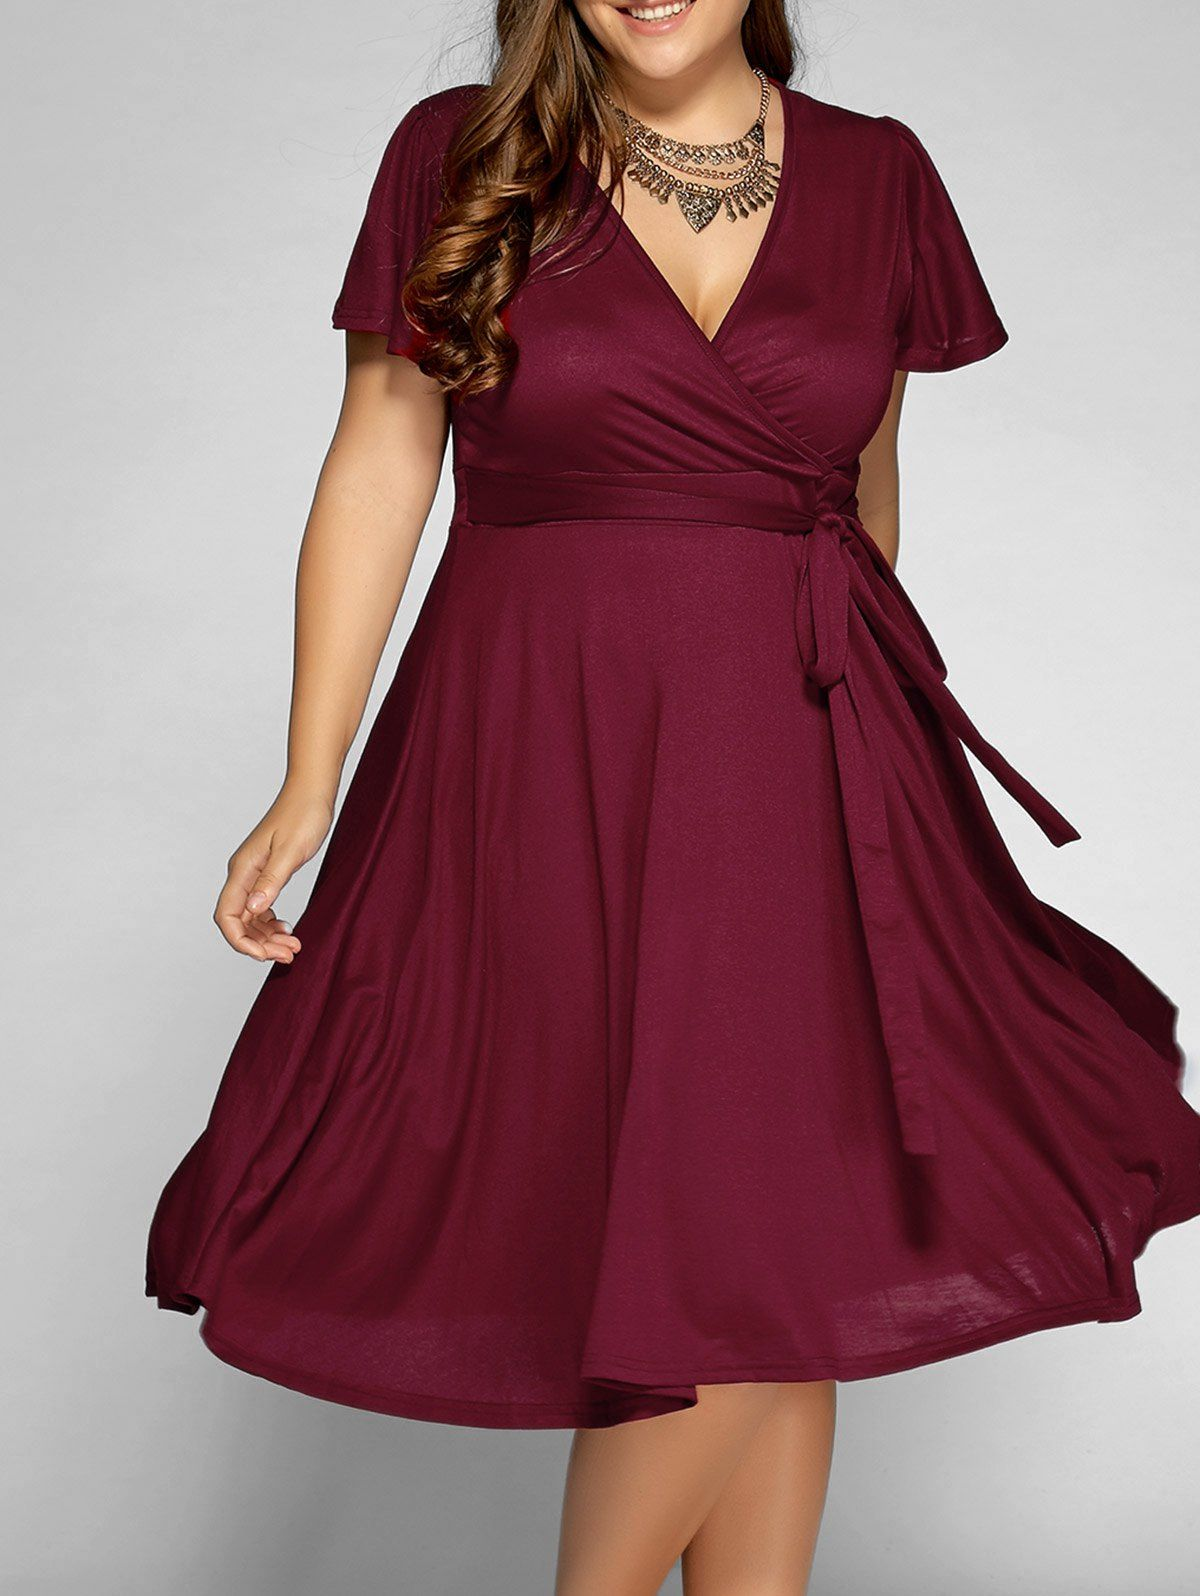 15e3cf7490 $14.03 for Front Tie Swing Surplice Plus Size Dress in Wine Red ...